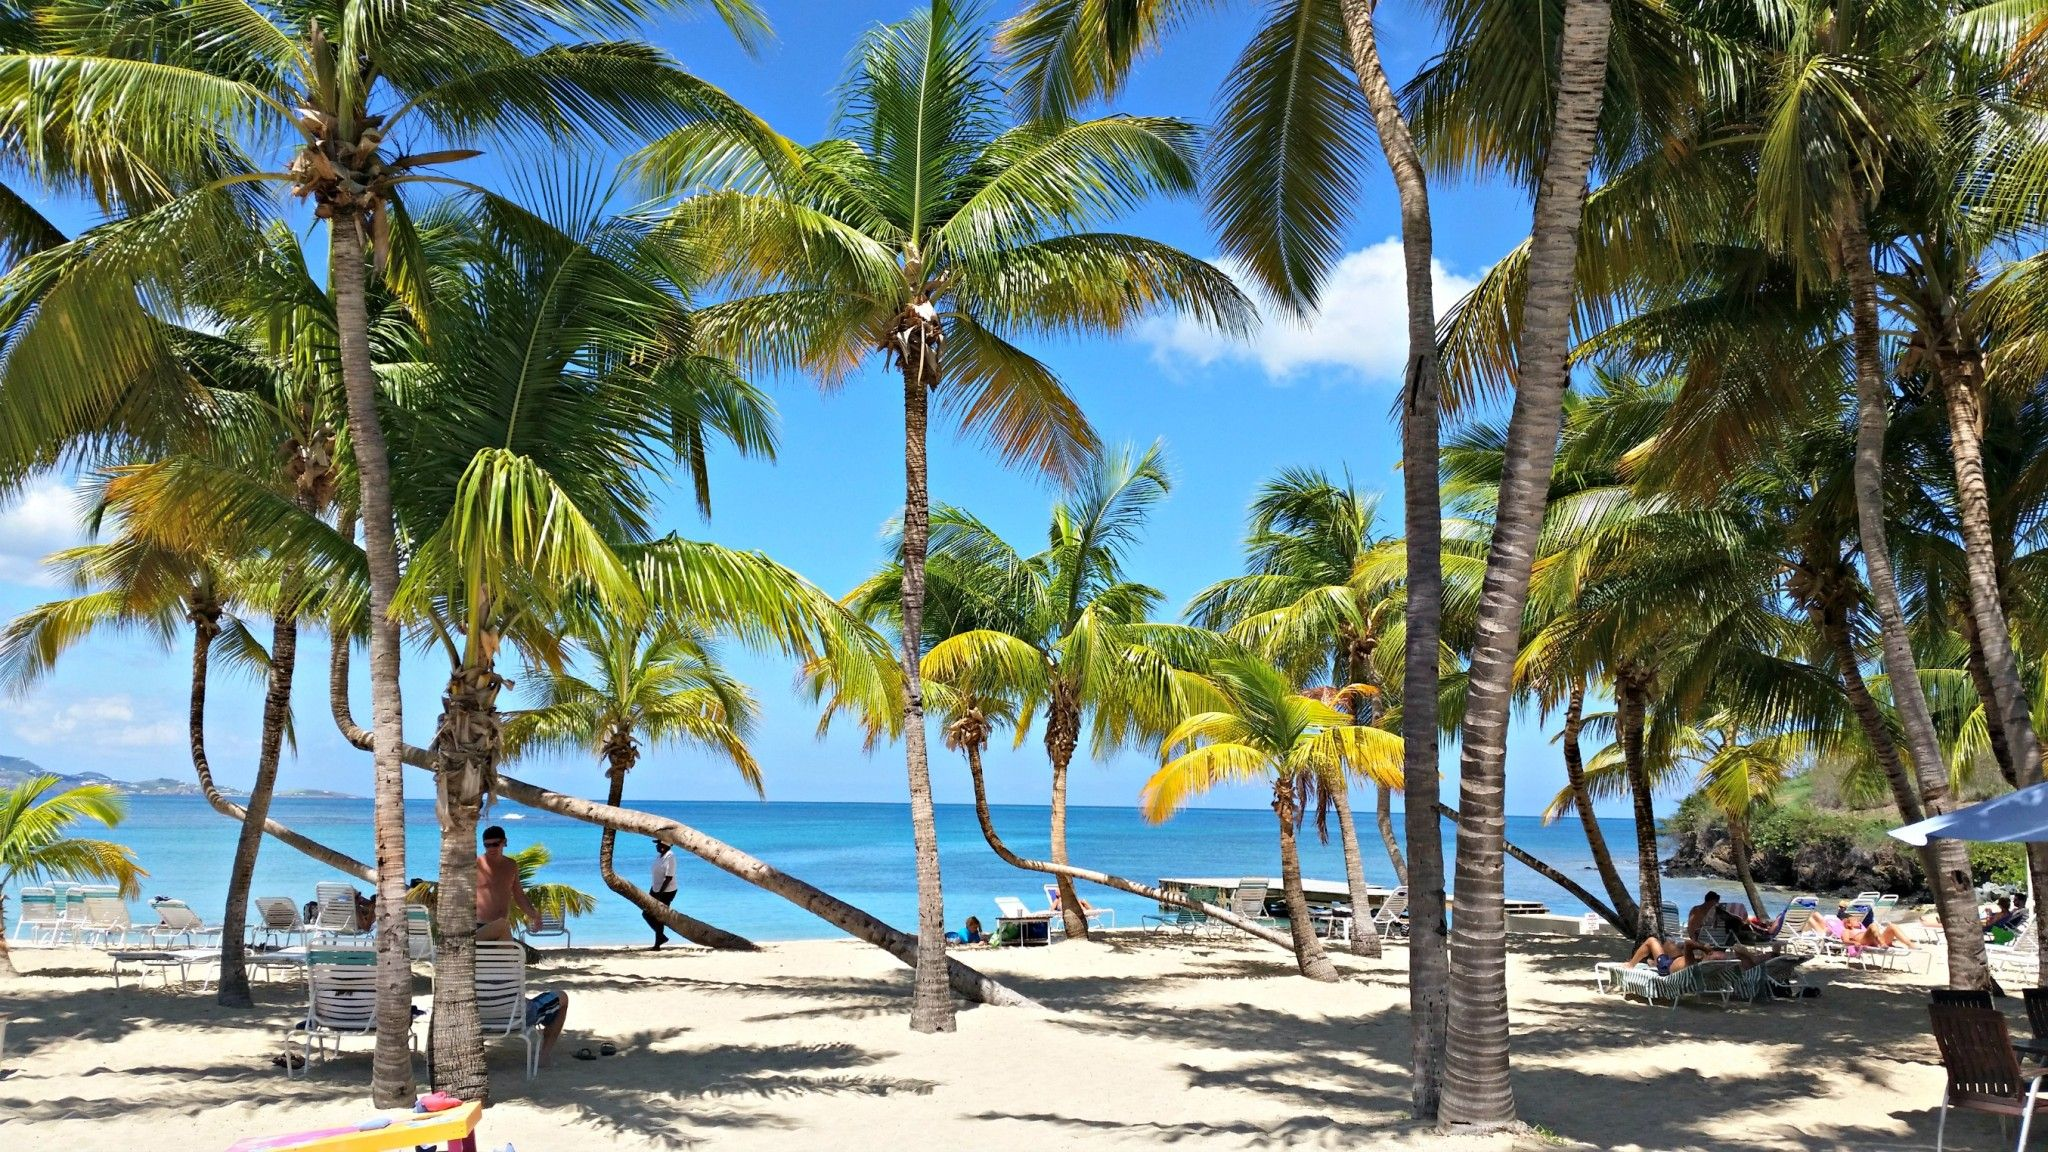 The Buccaneer Resort In St Croix Travel Via Kangabunnie